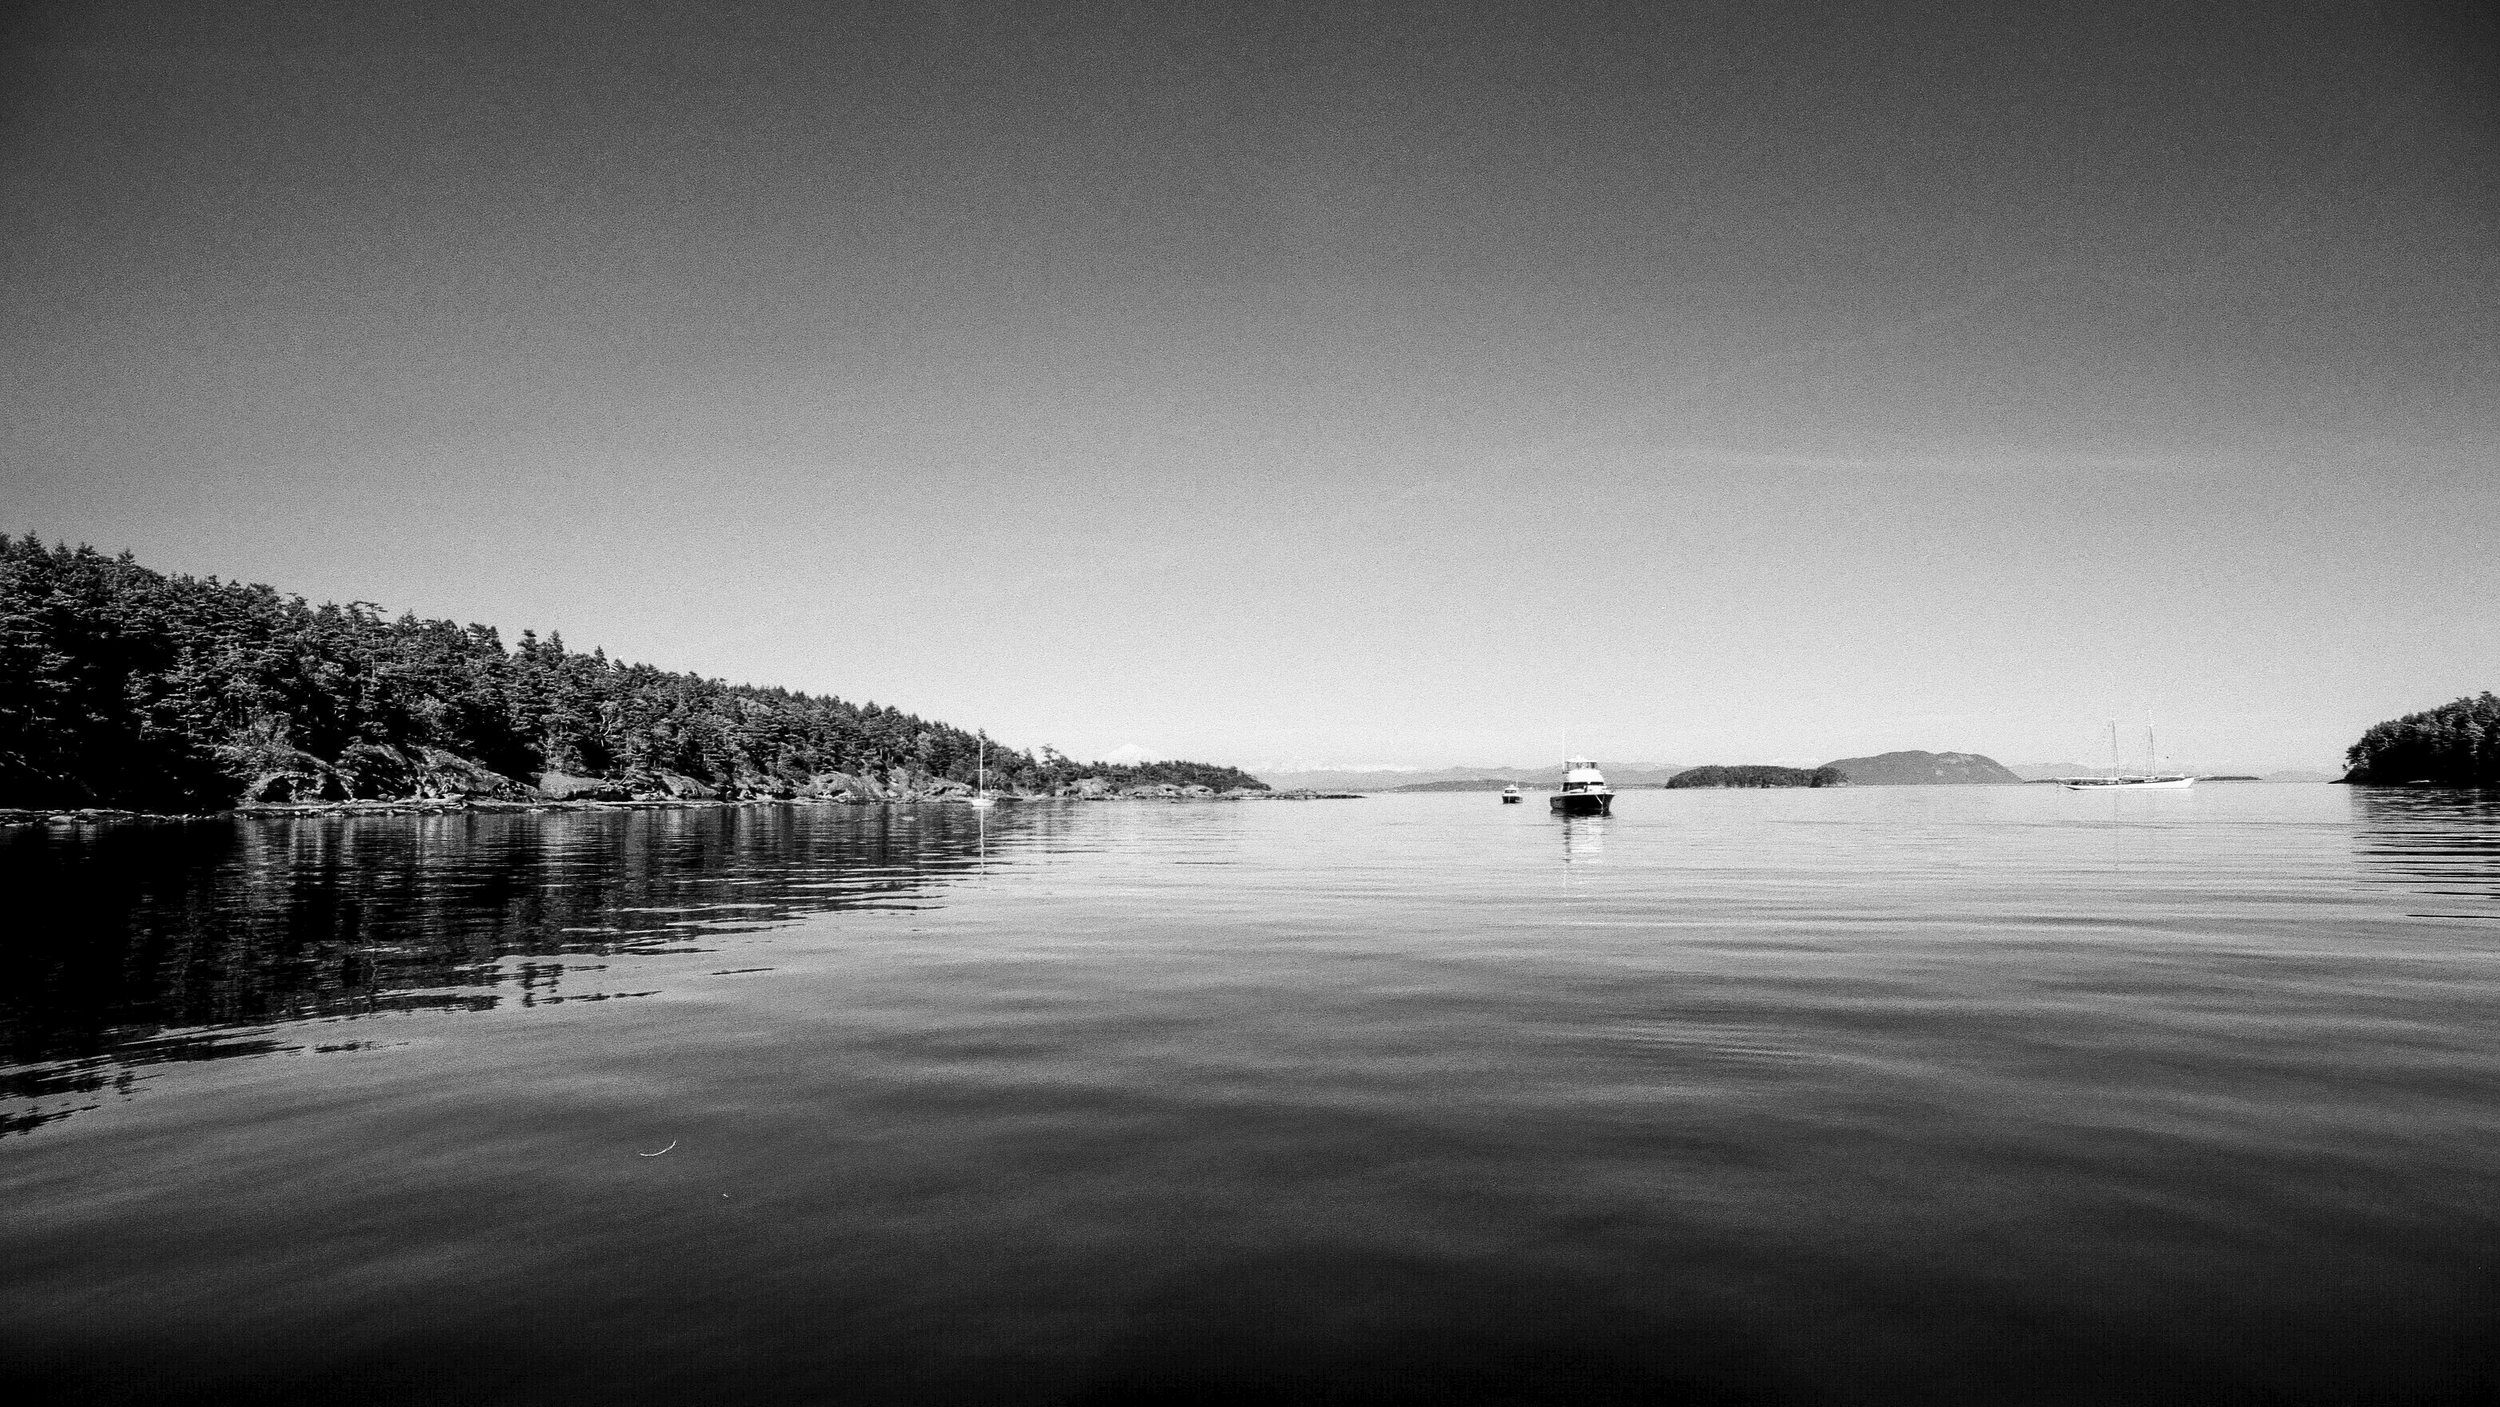 Echo Bay, Sucia Island, Washington